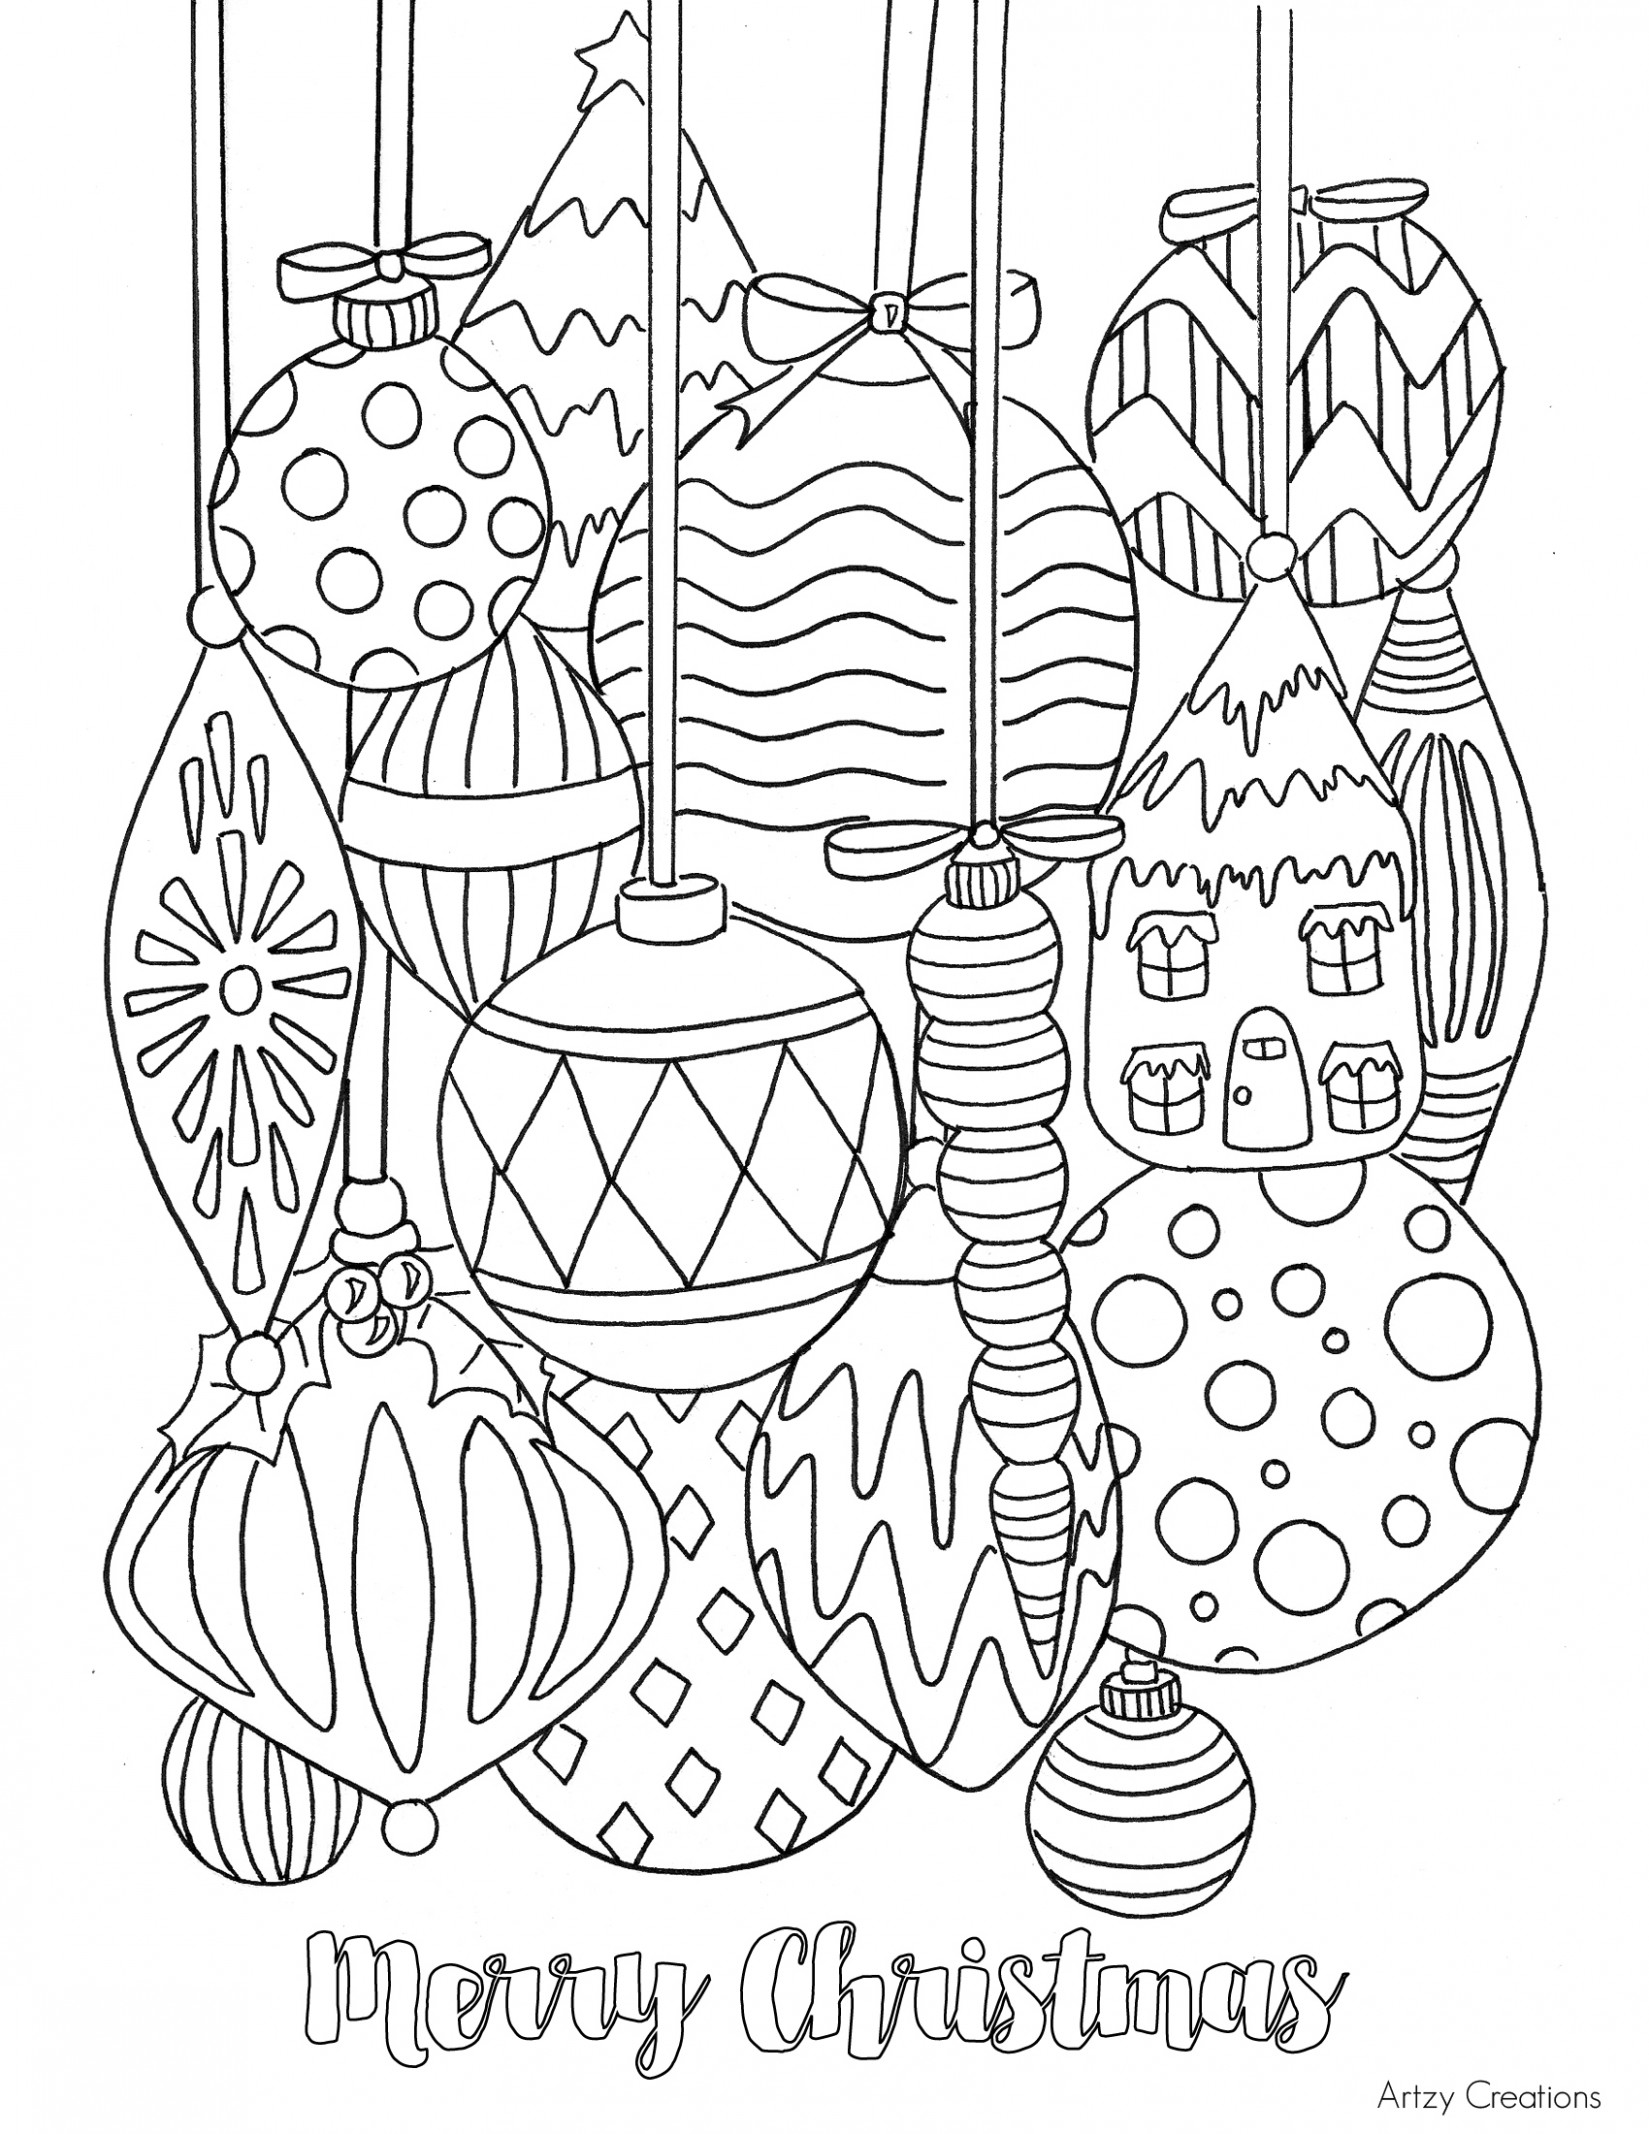 Free Christmas Ornament Coloring Page – TGIF – This Grandma is Fun – Coloring Pages With Christmas Ornaments